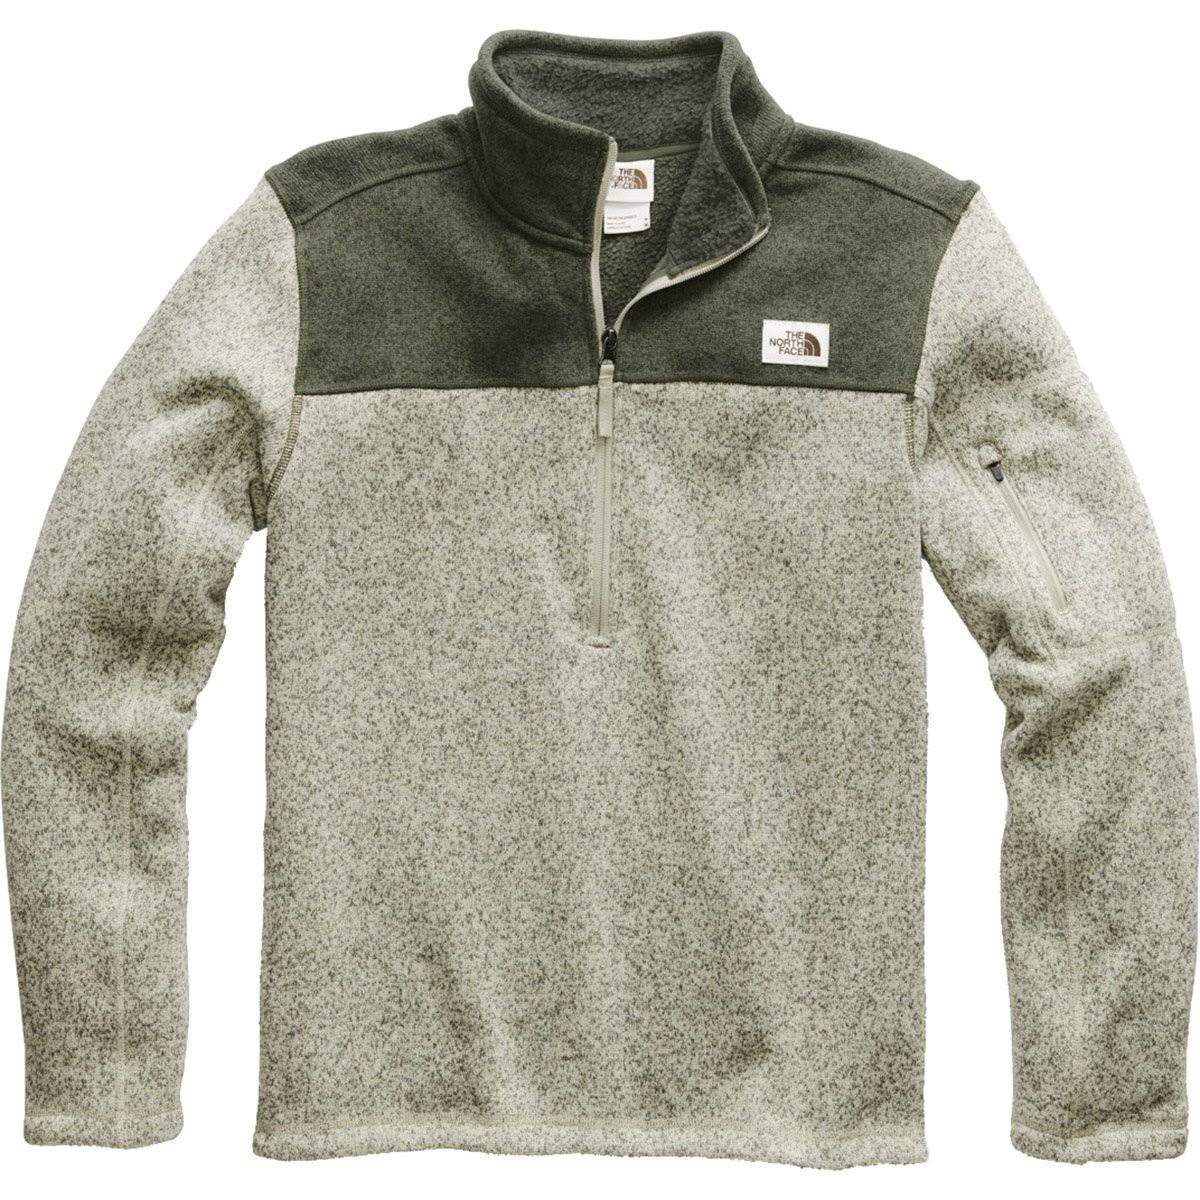 The North Face Men's Gordon Lyons 1/4 Zip Pullover